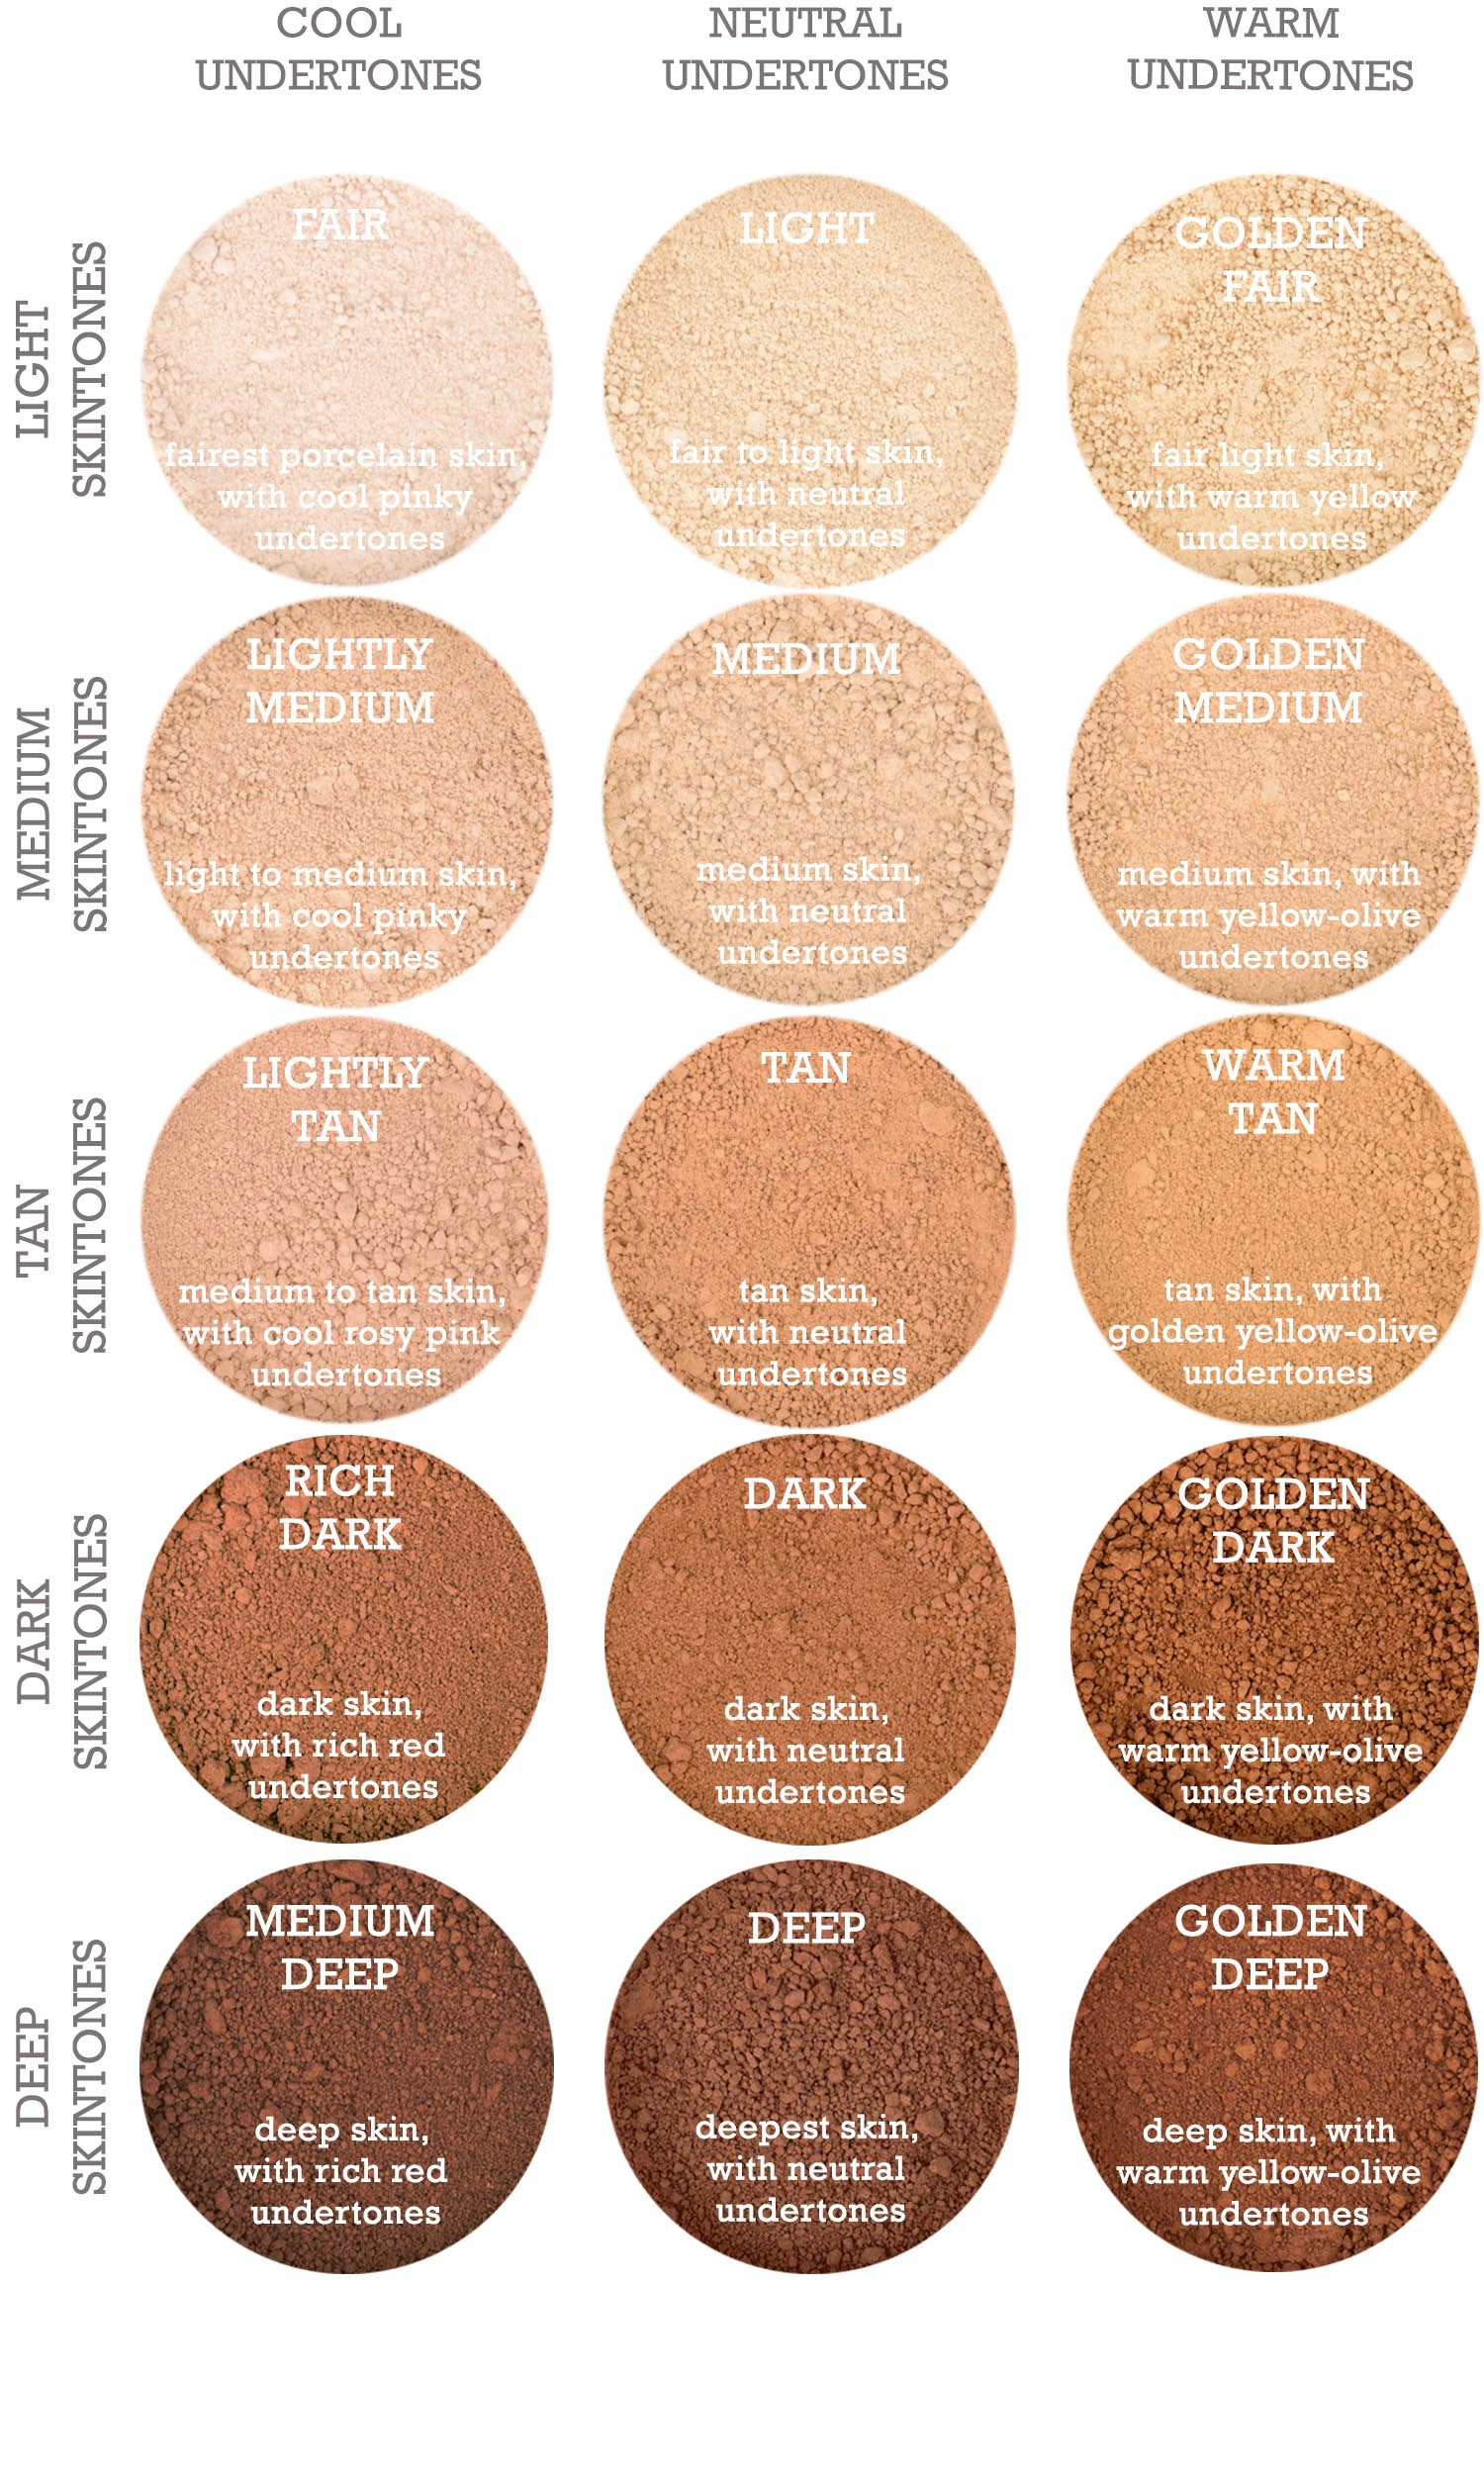 Honeypie Minerals Foundation Shade Chart Skintone and Undertone 15 Shades Available Natural Vegan Makeup